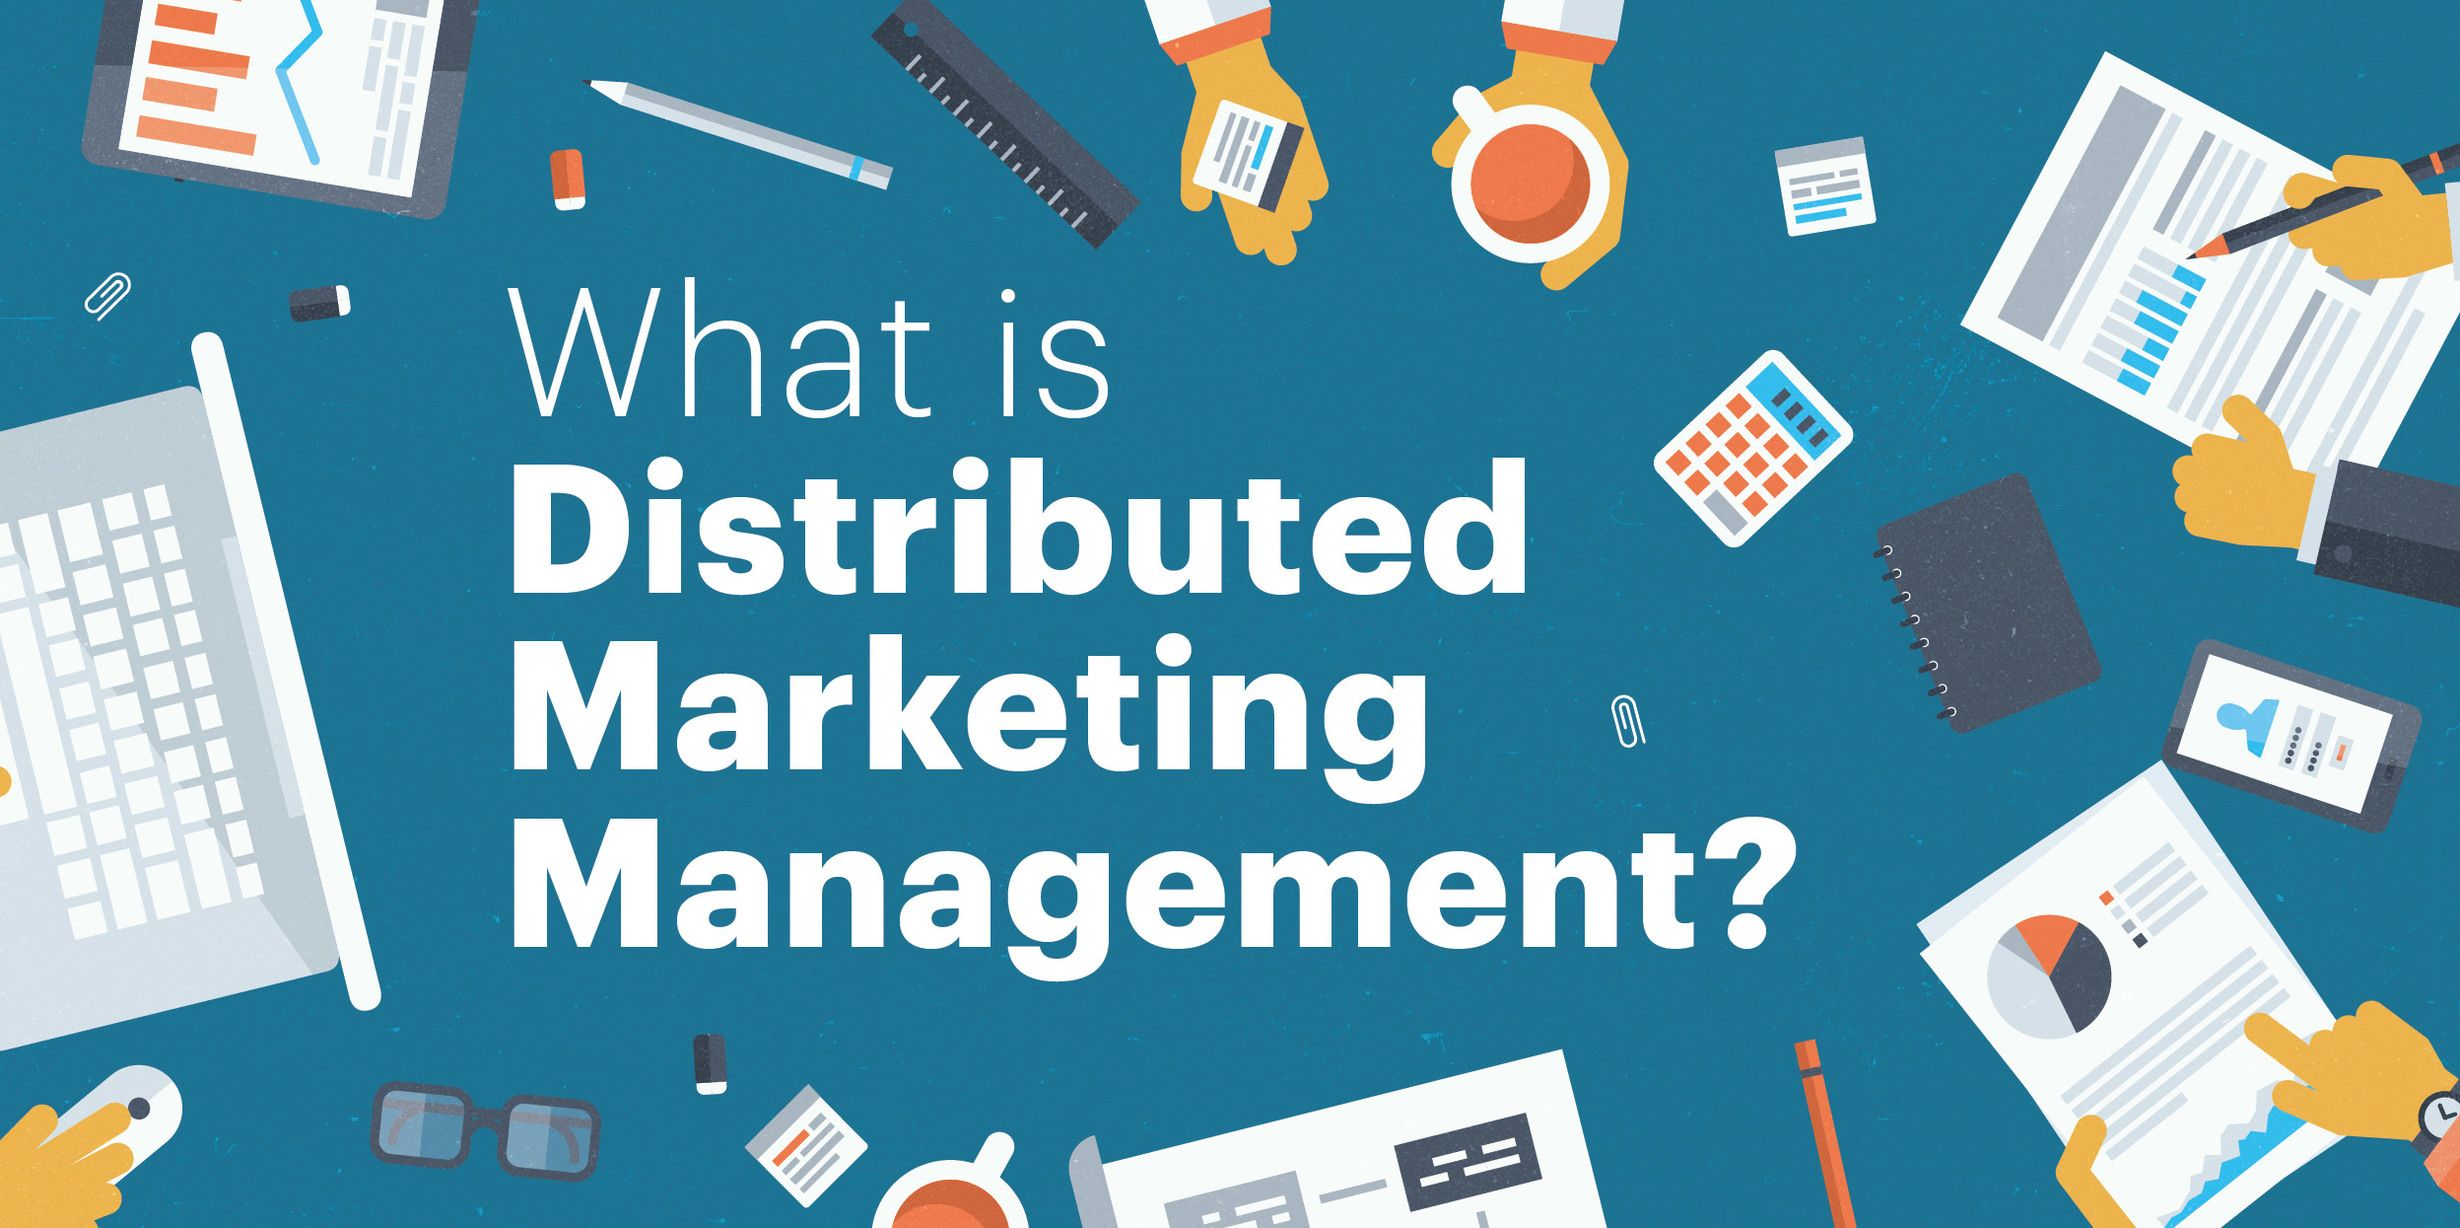 Distributed Marketing Management Is One Of The 21st Century S